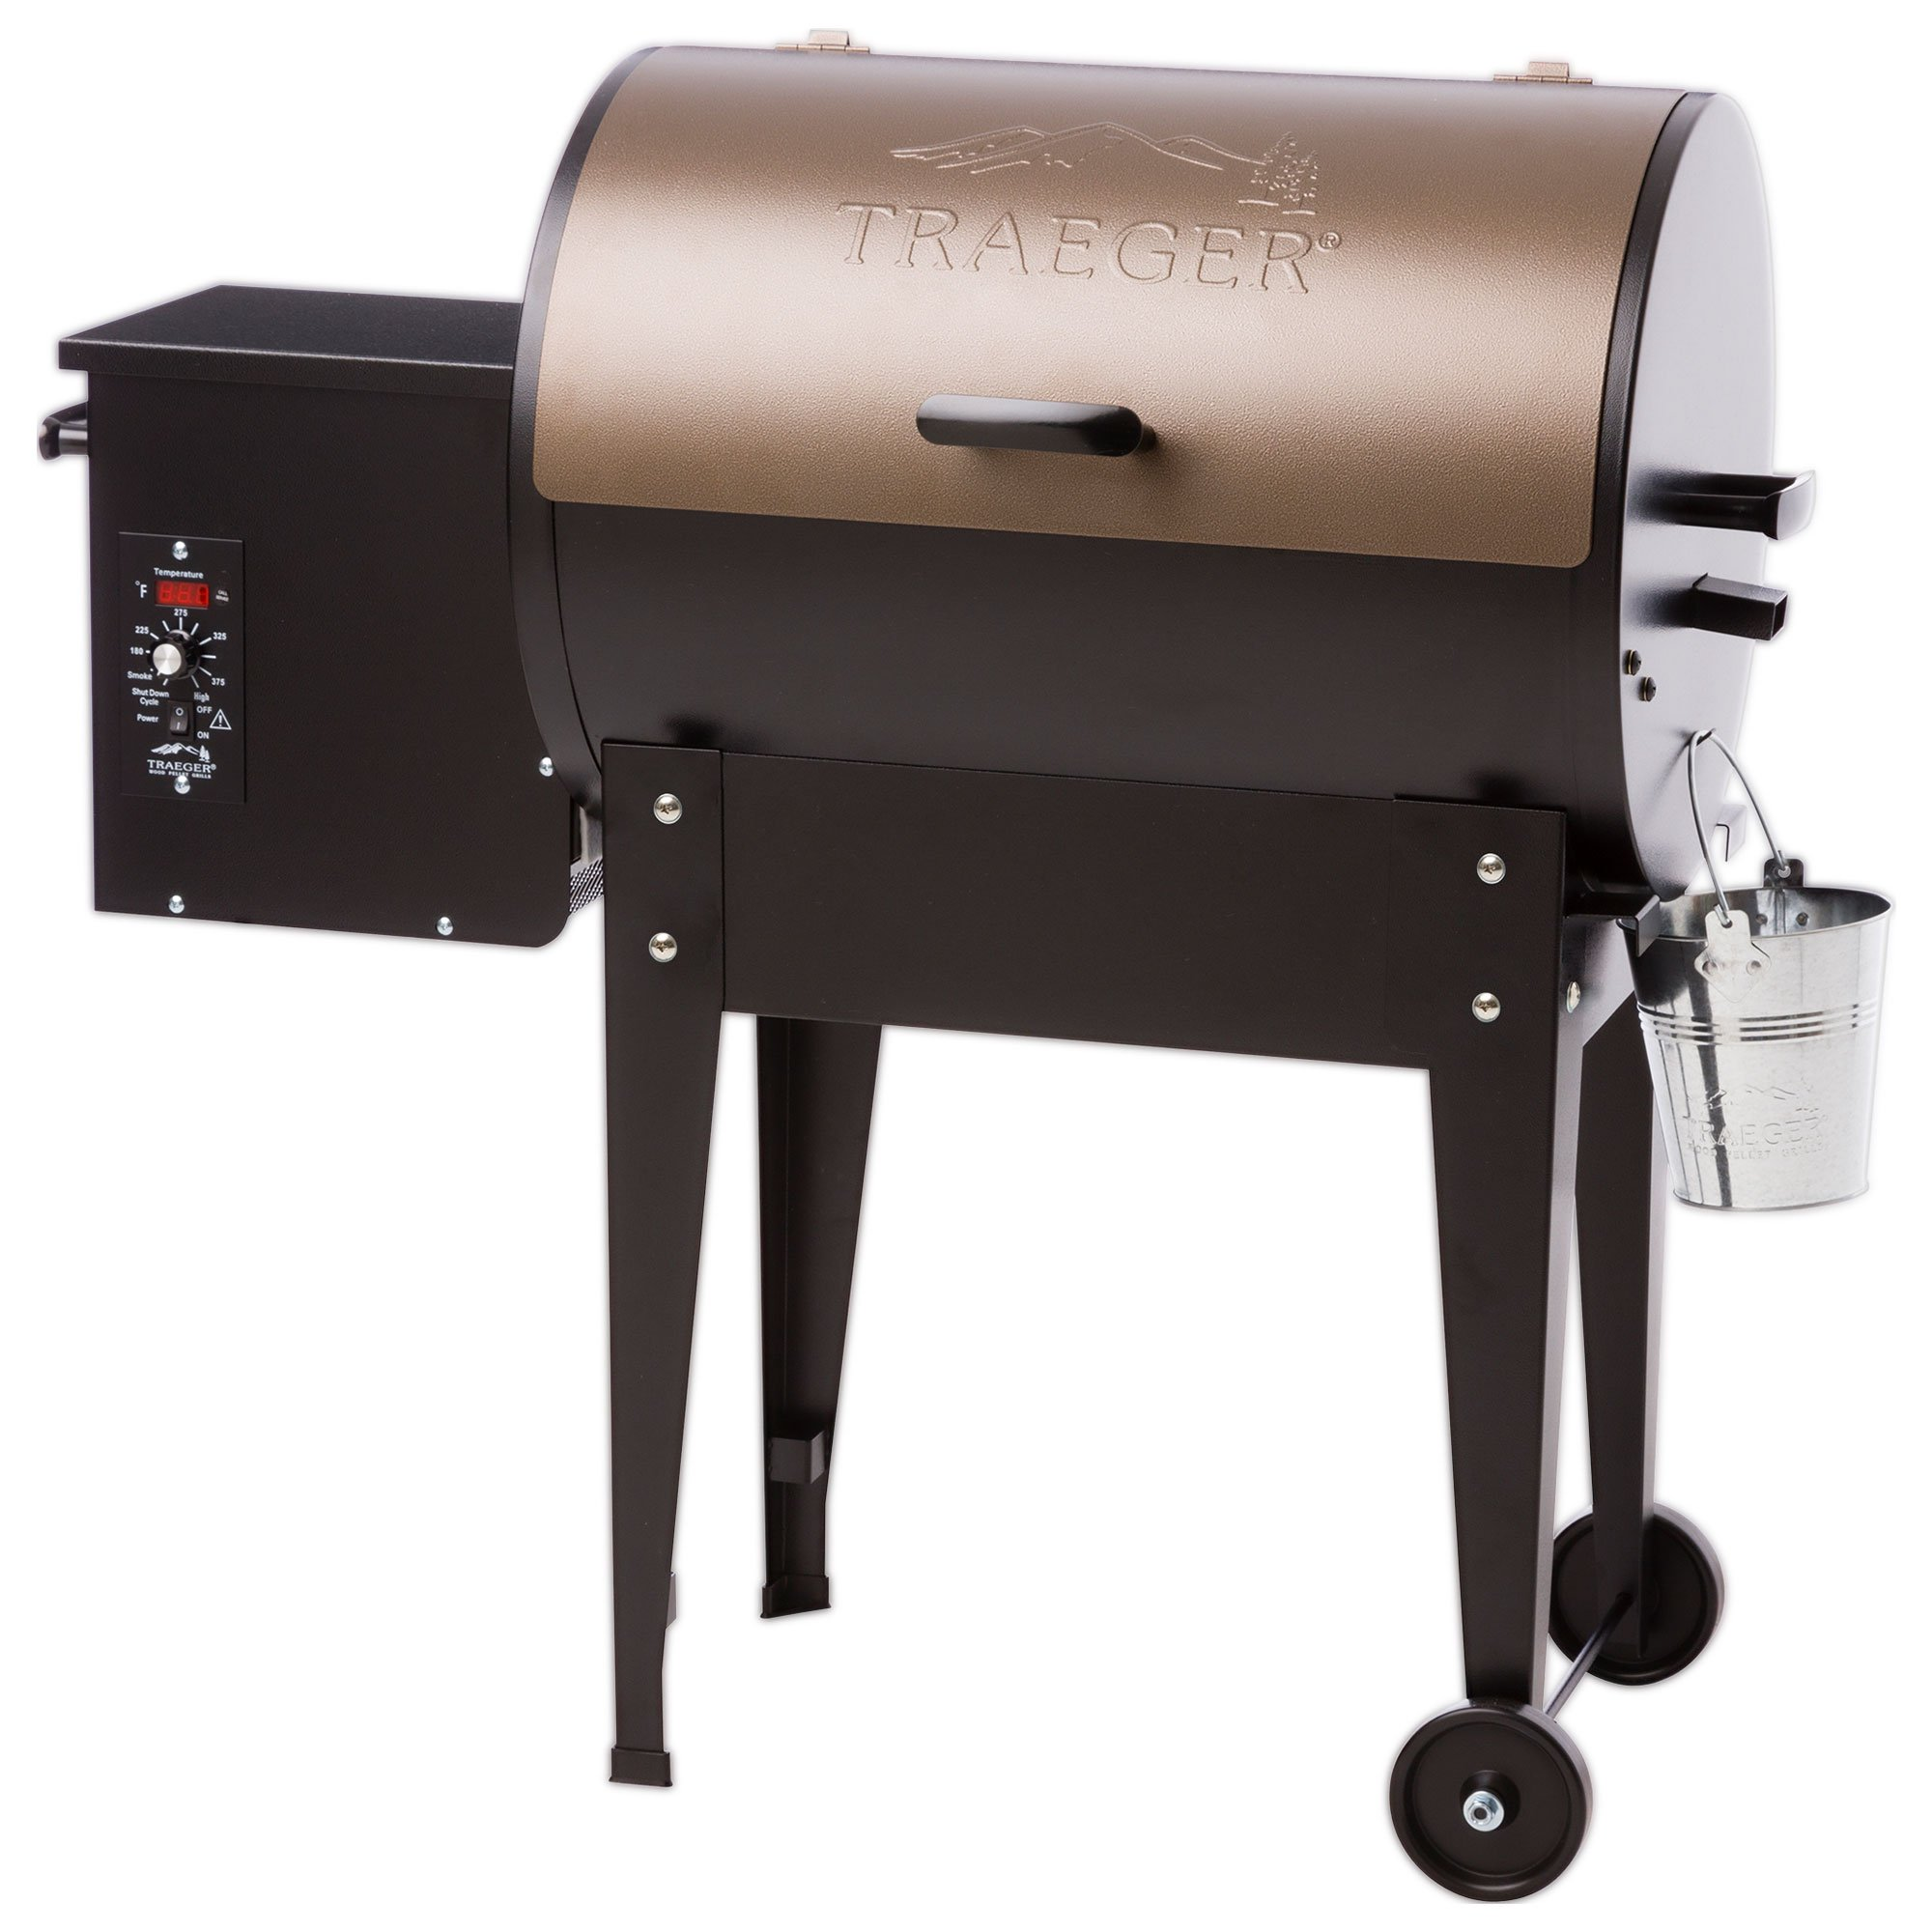 Traeger Grills Junior Elite Wood Pellet Grill and Smoker - Grill, Smoke, Bake, Roast, Braise, and BBQ (Bronze) by Traeger